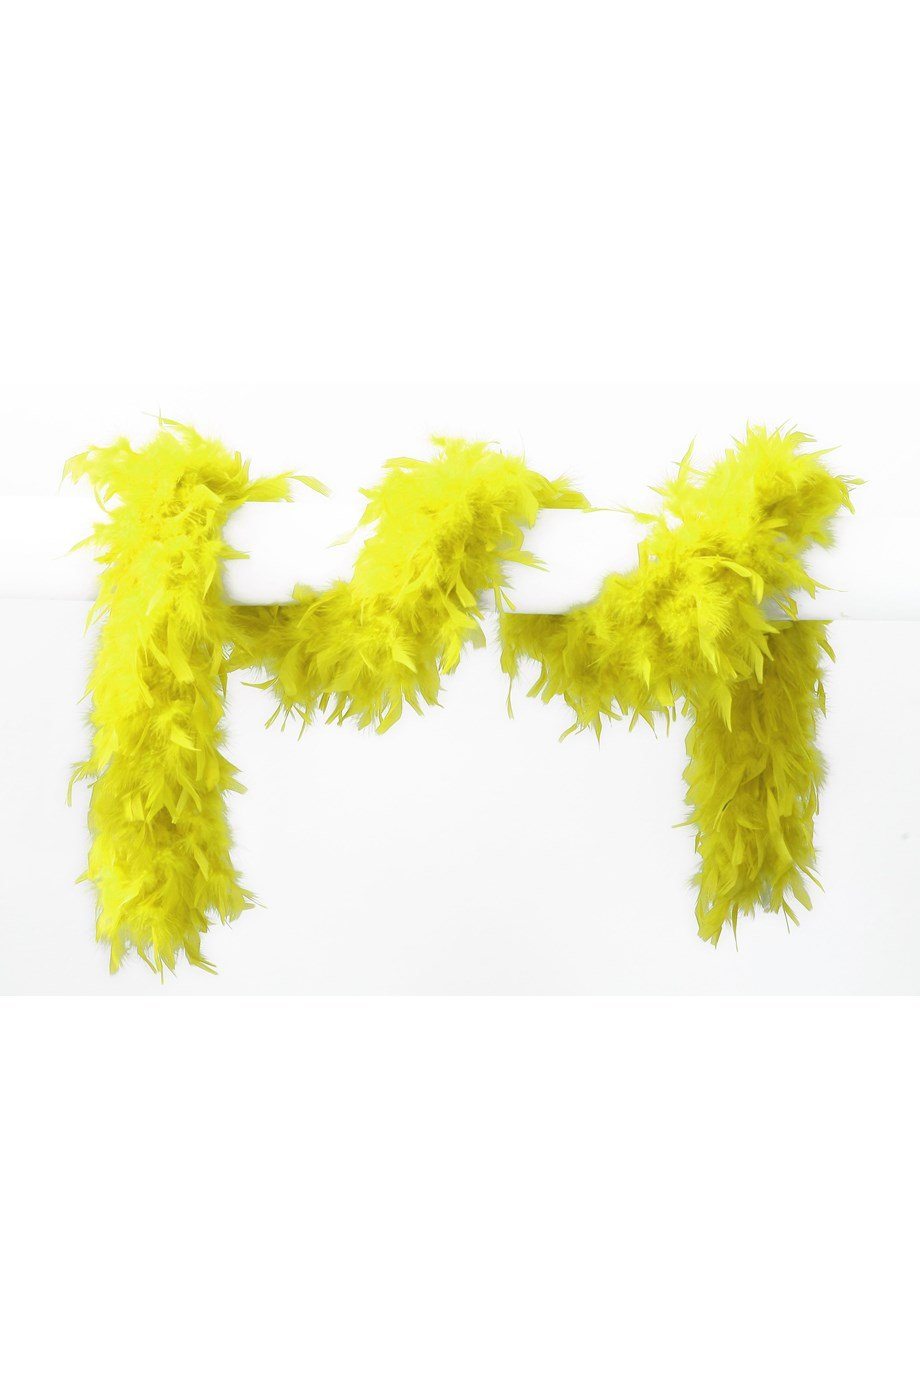 Jannes 21000 Deluxe Feather Boa approx. 180 cm. 65gr. – Lots of Colours Ste Festartikel GmbH